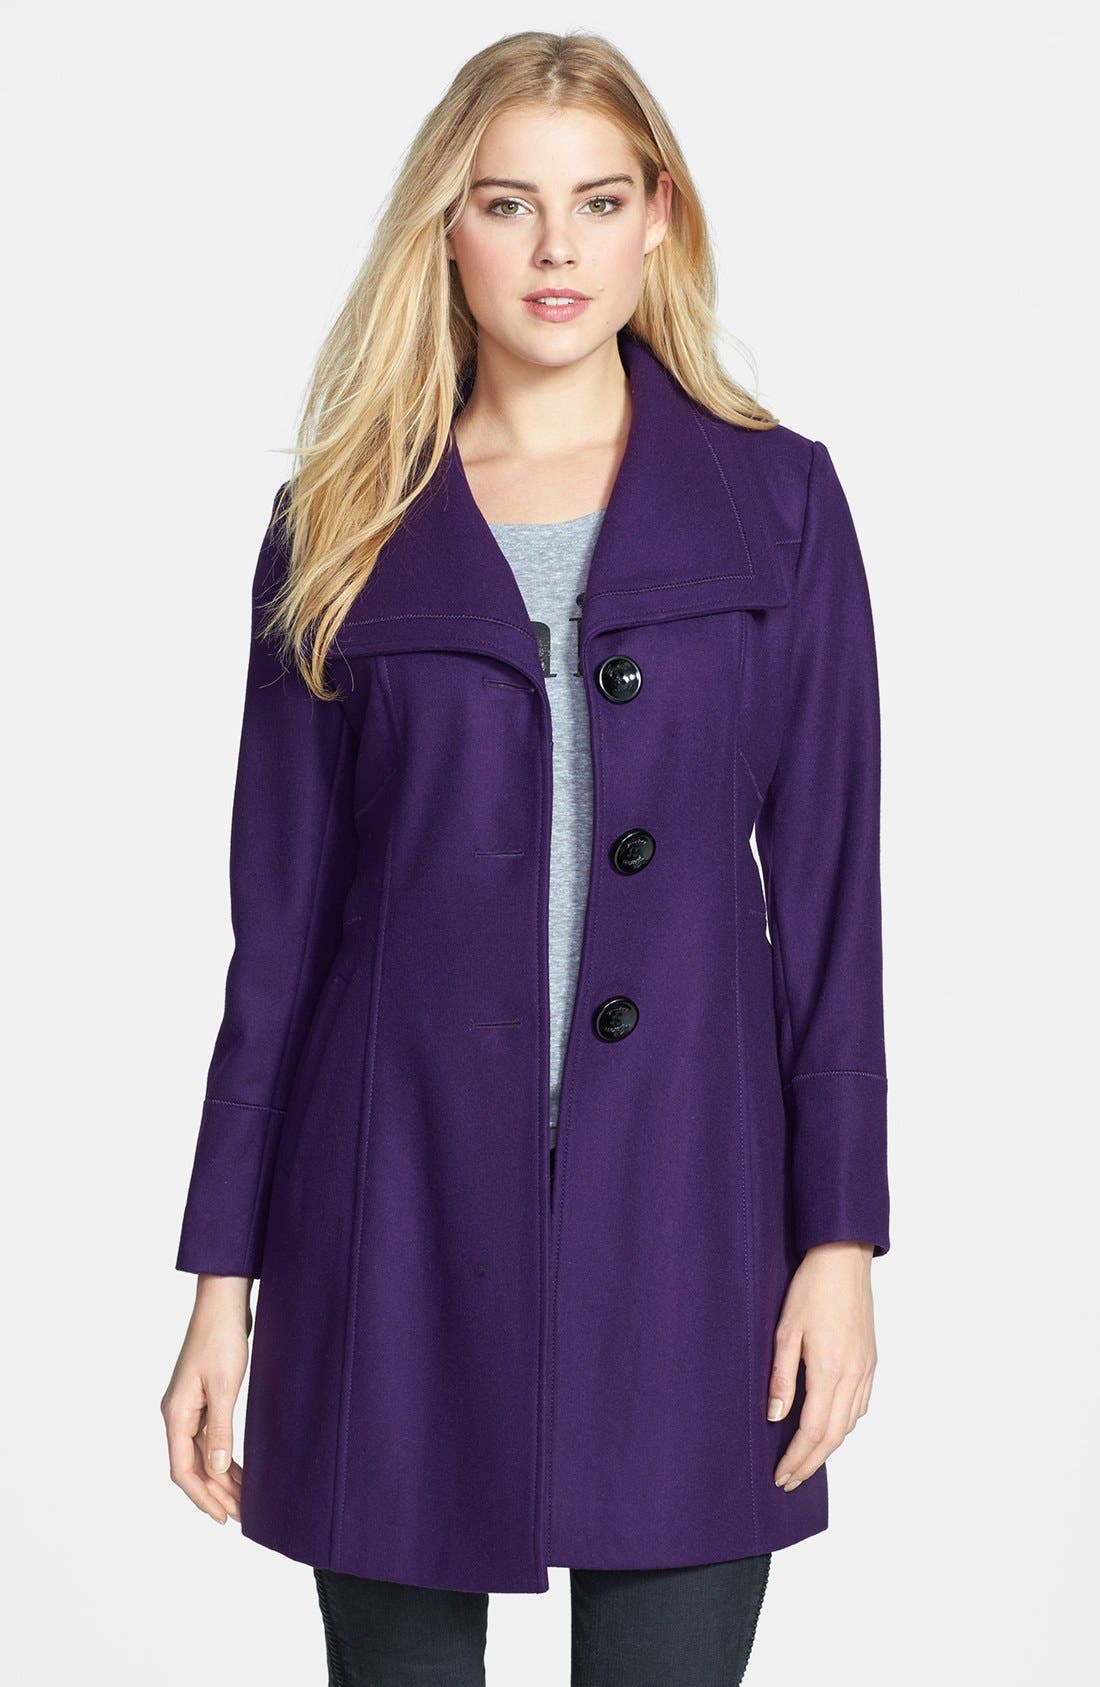 Main Image - GUESS Exaggerated Collar Wool Blend Coat (Petite)